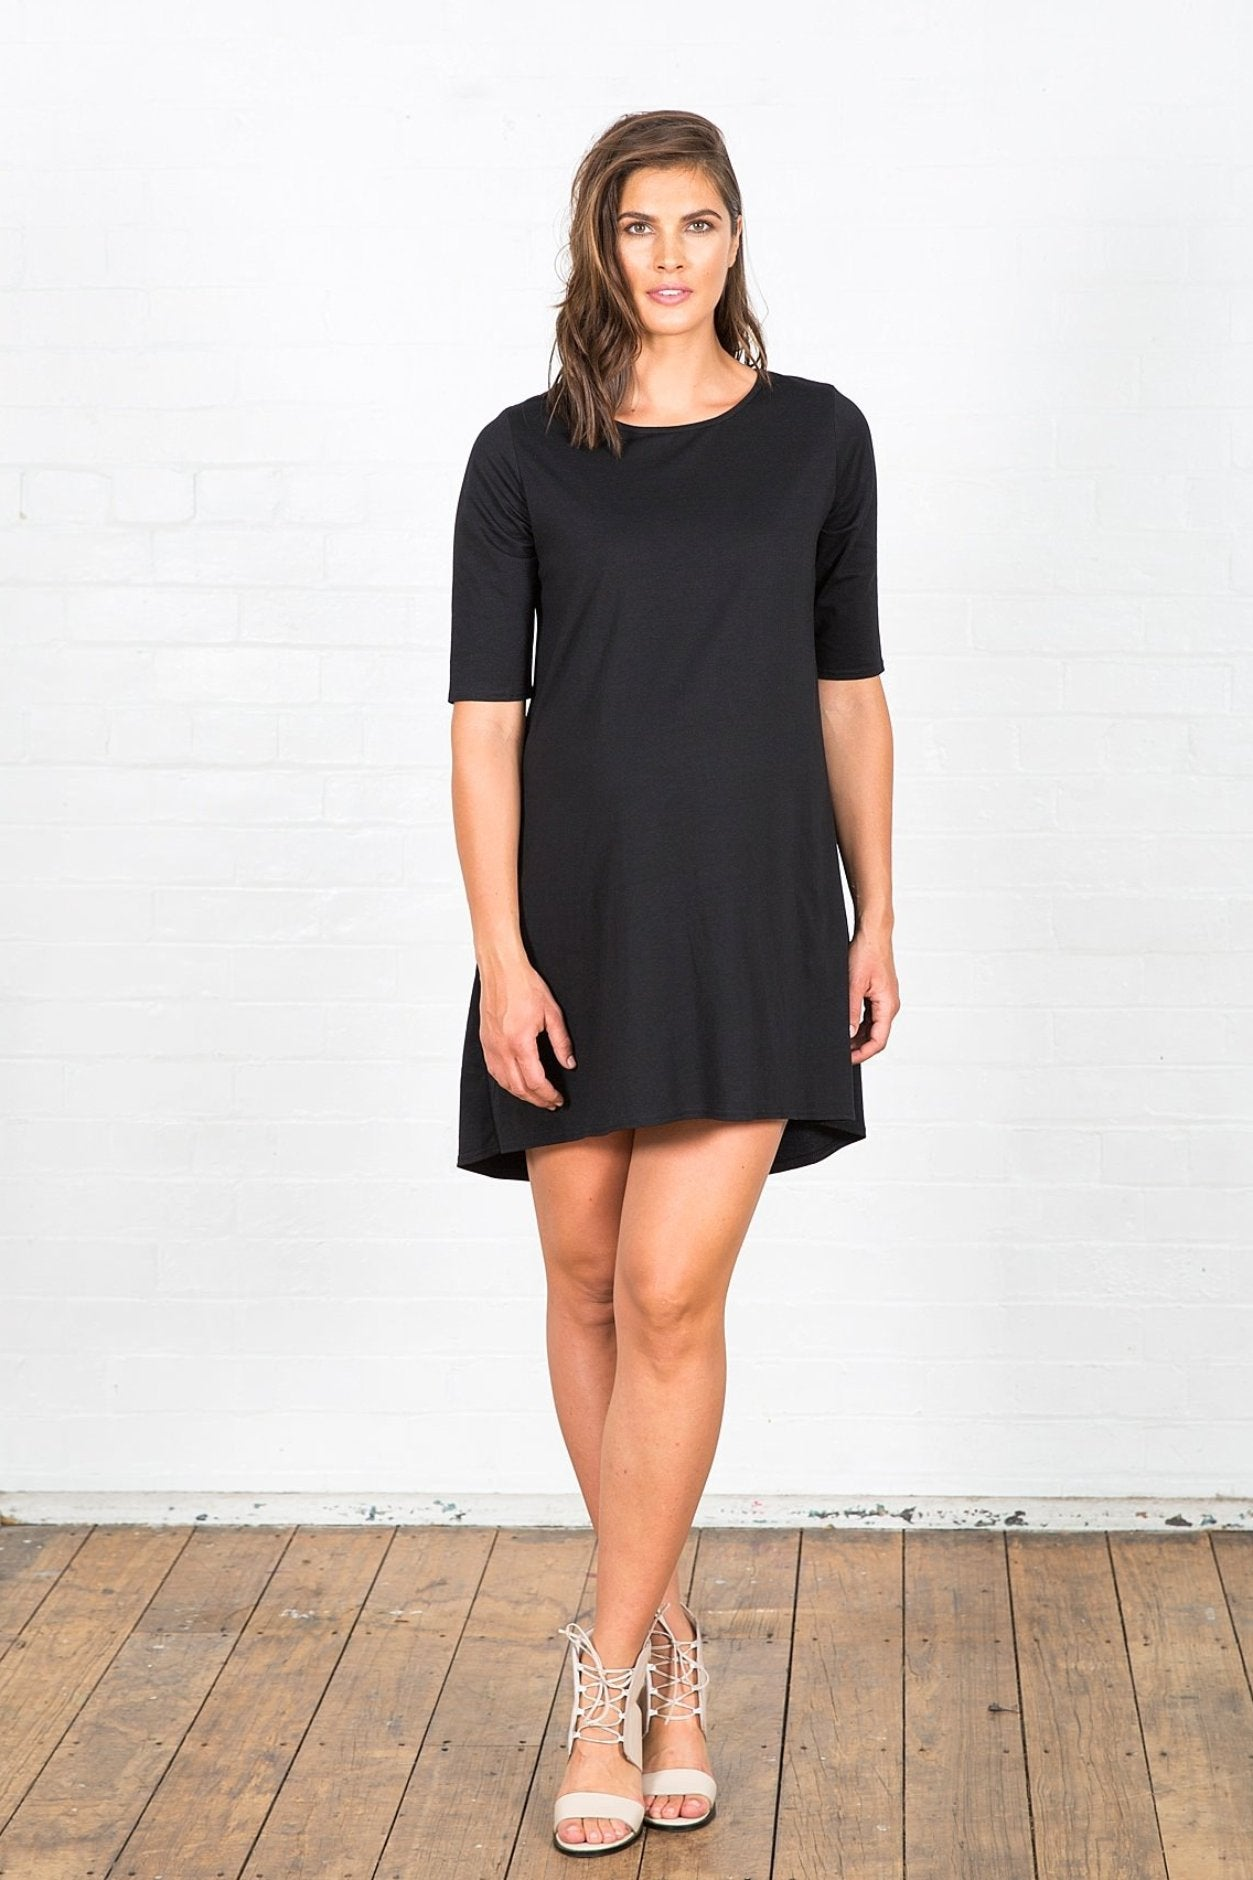 fa1ce7f48af Runway Black Maternity Work Dress-Front 2 4e010be4-beec-4bf5-a433-41cabb1e1c64.jpg v 1536618101